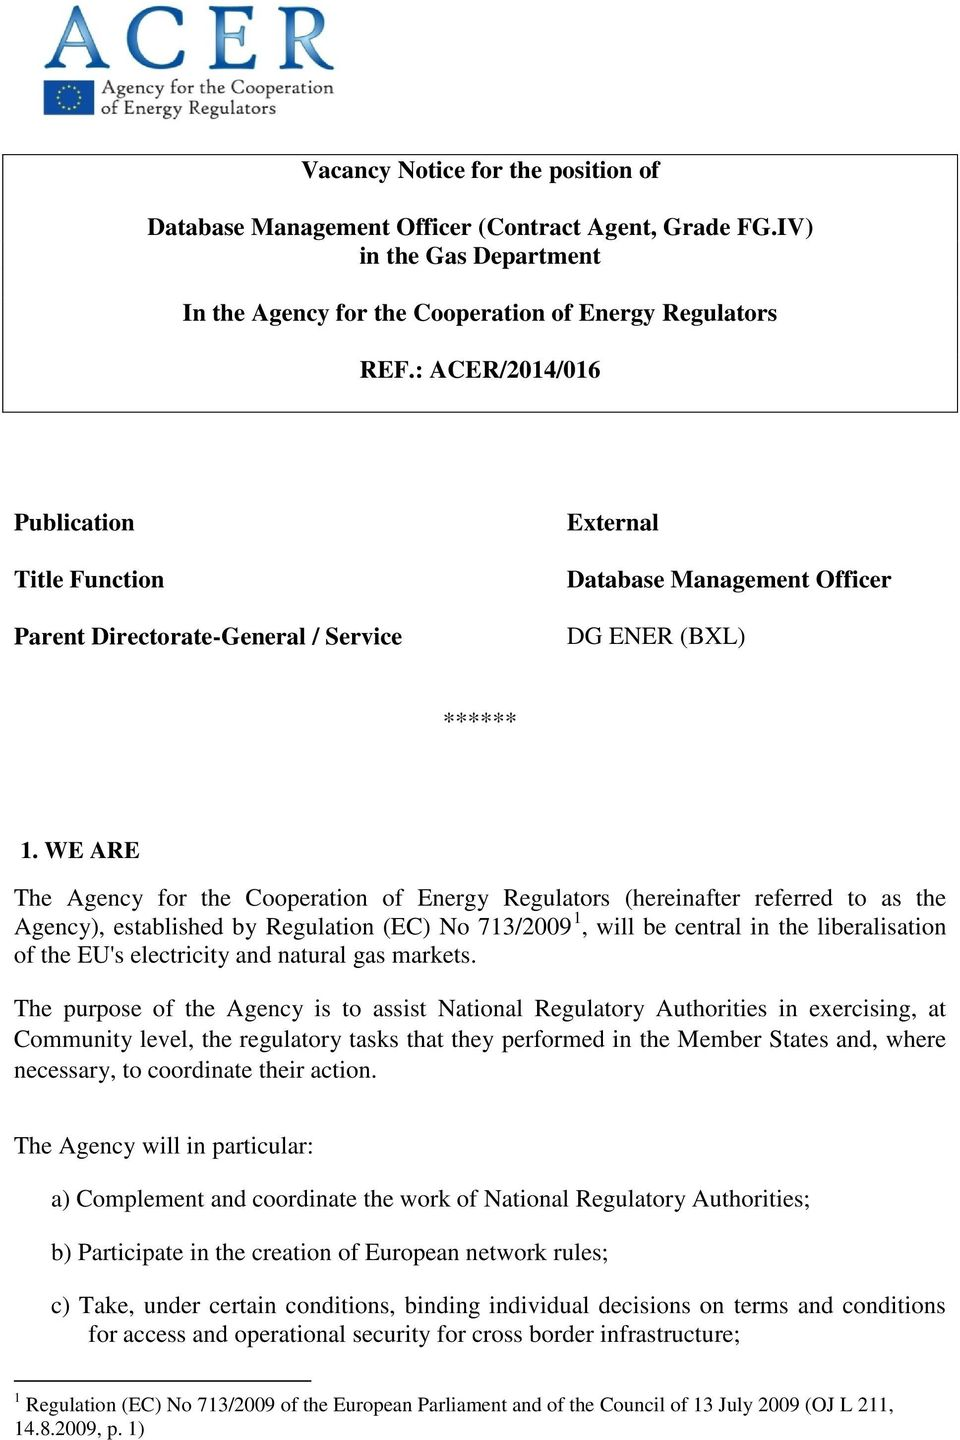 WE ARE The Agency for the Cooperation of Energy Regulators (hereinafter referred to as the Agency), established by Regulation (EC) No 713/2009 1, will be central in the liberalisation of the EU's